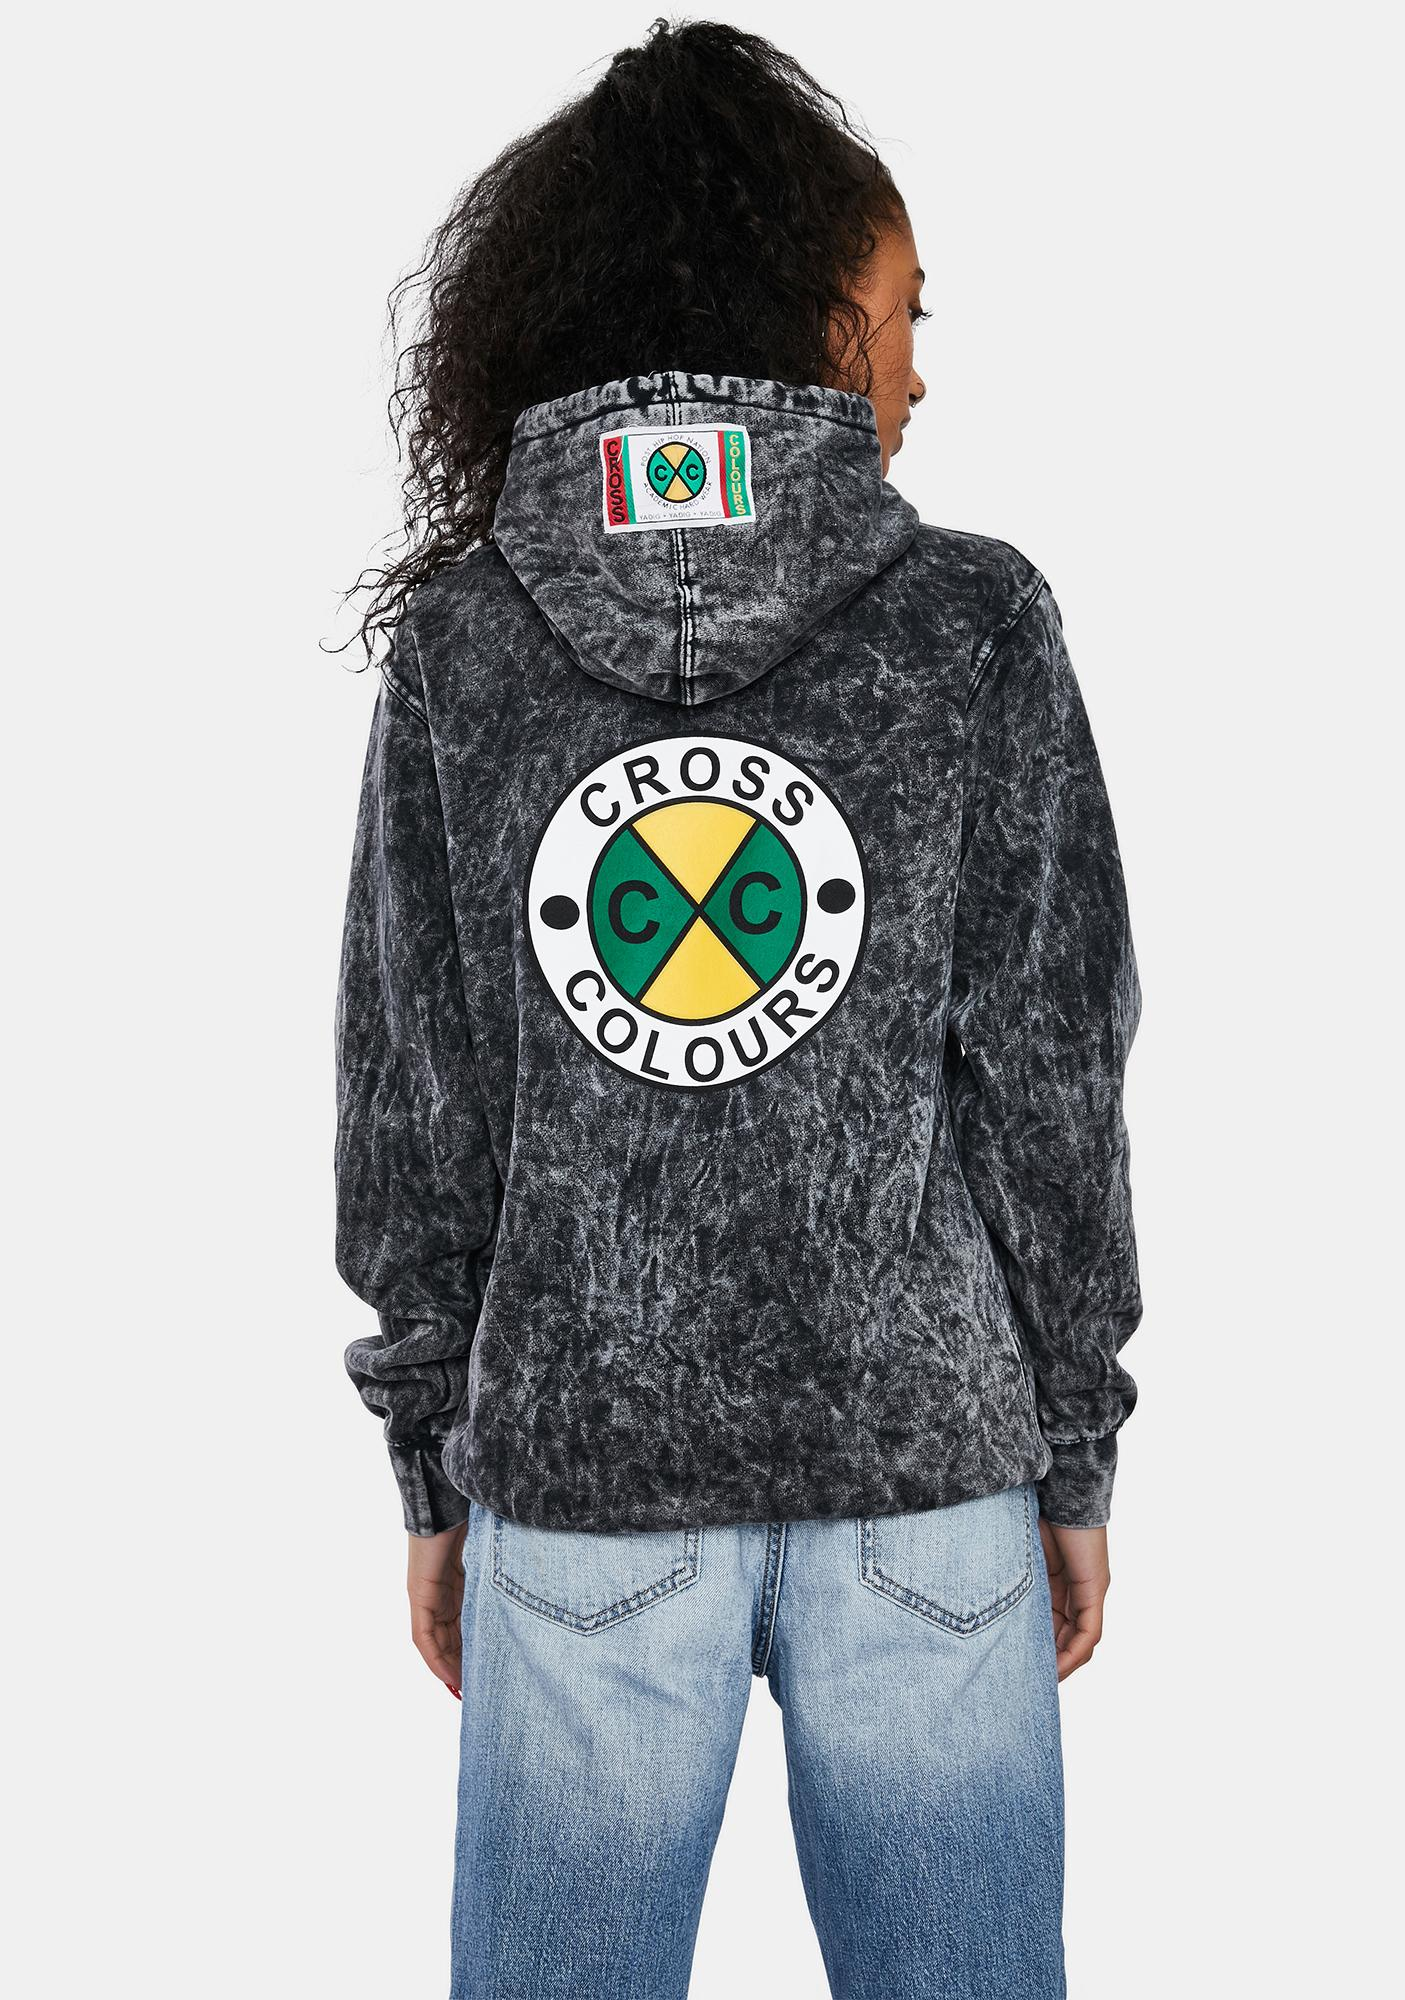 Cross Colours Circle Logo Hoodie